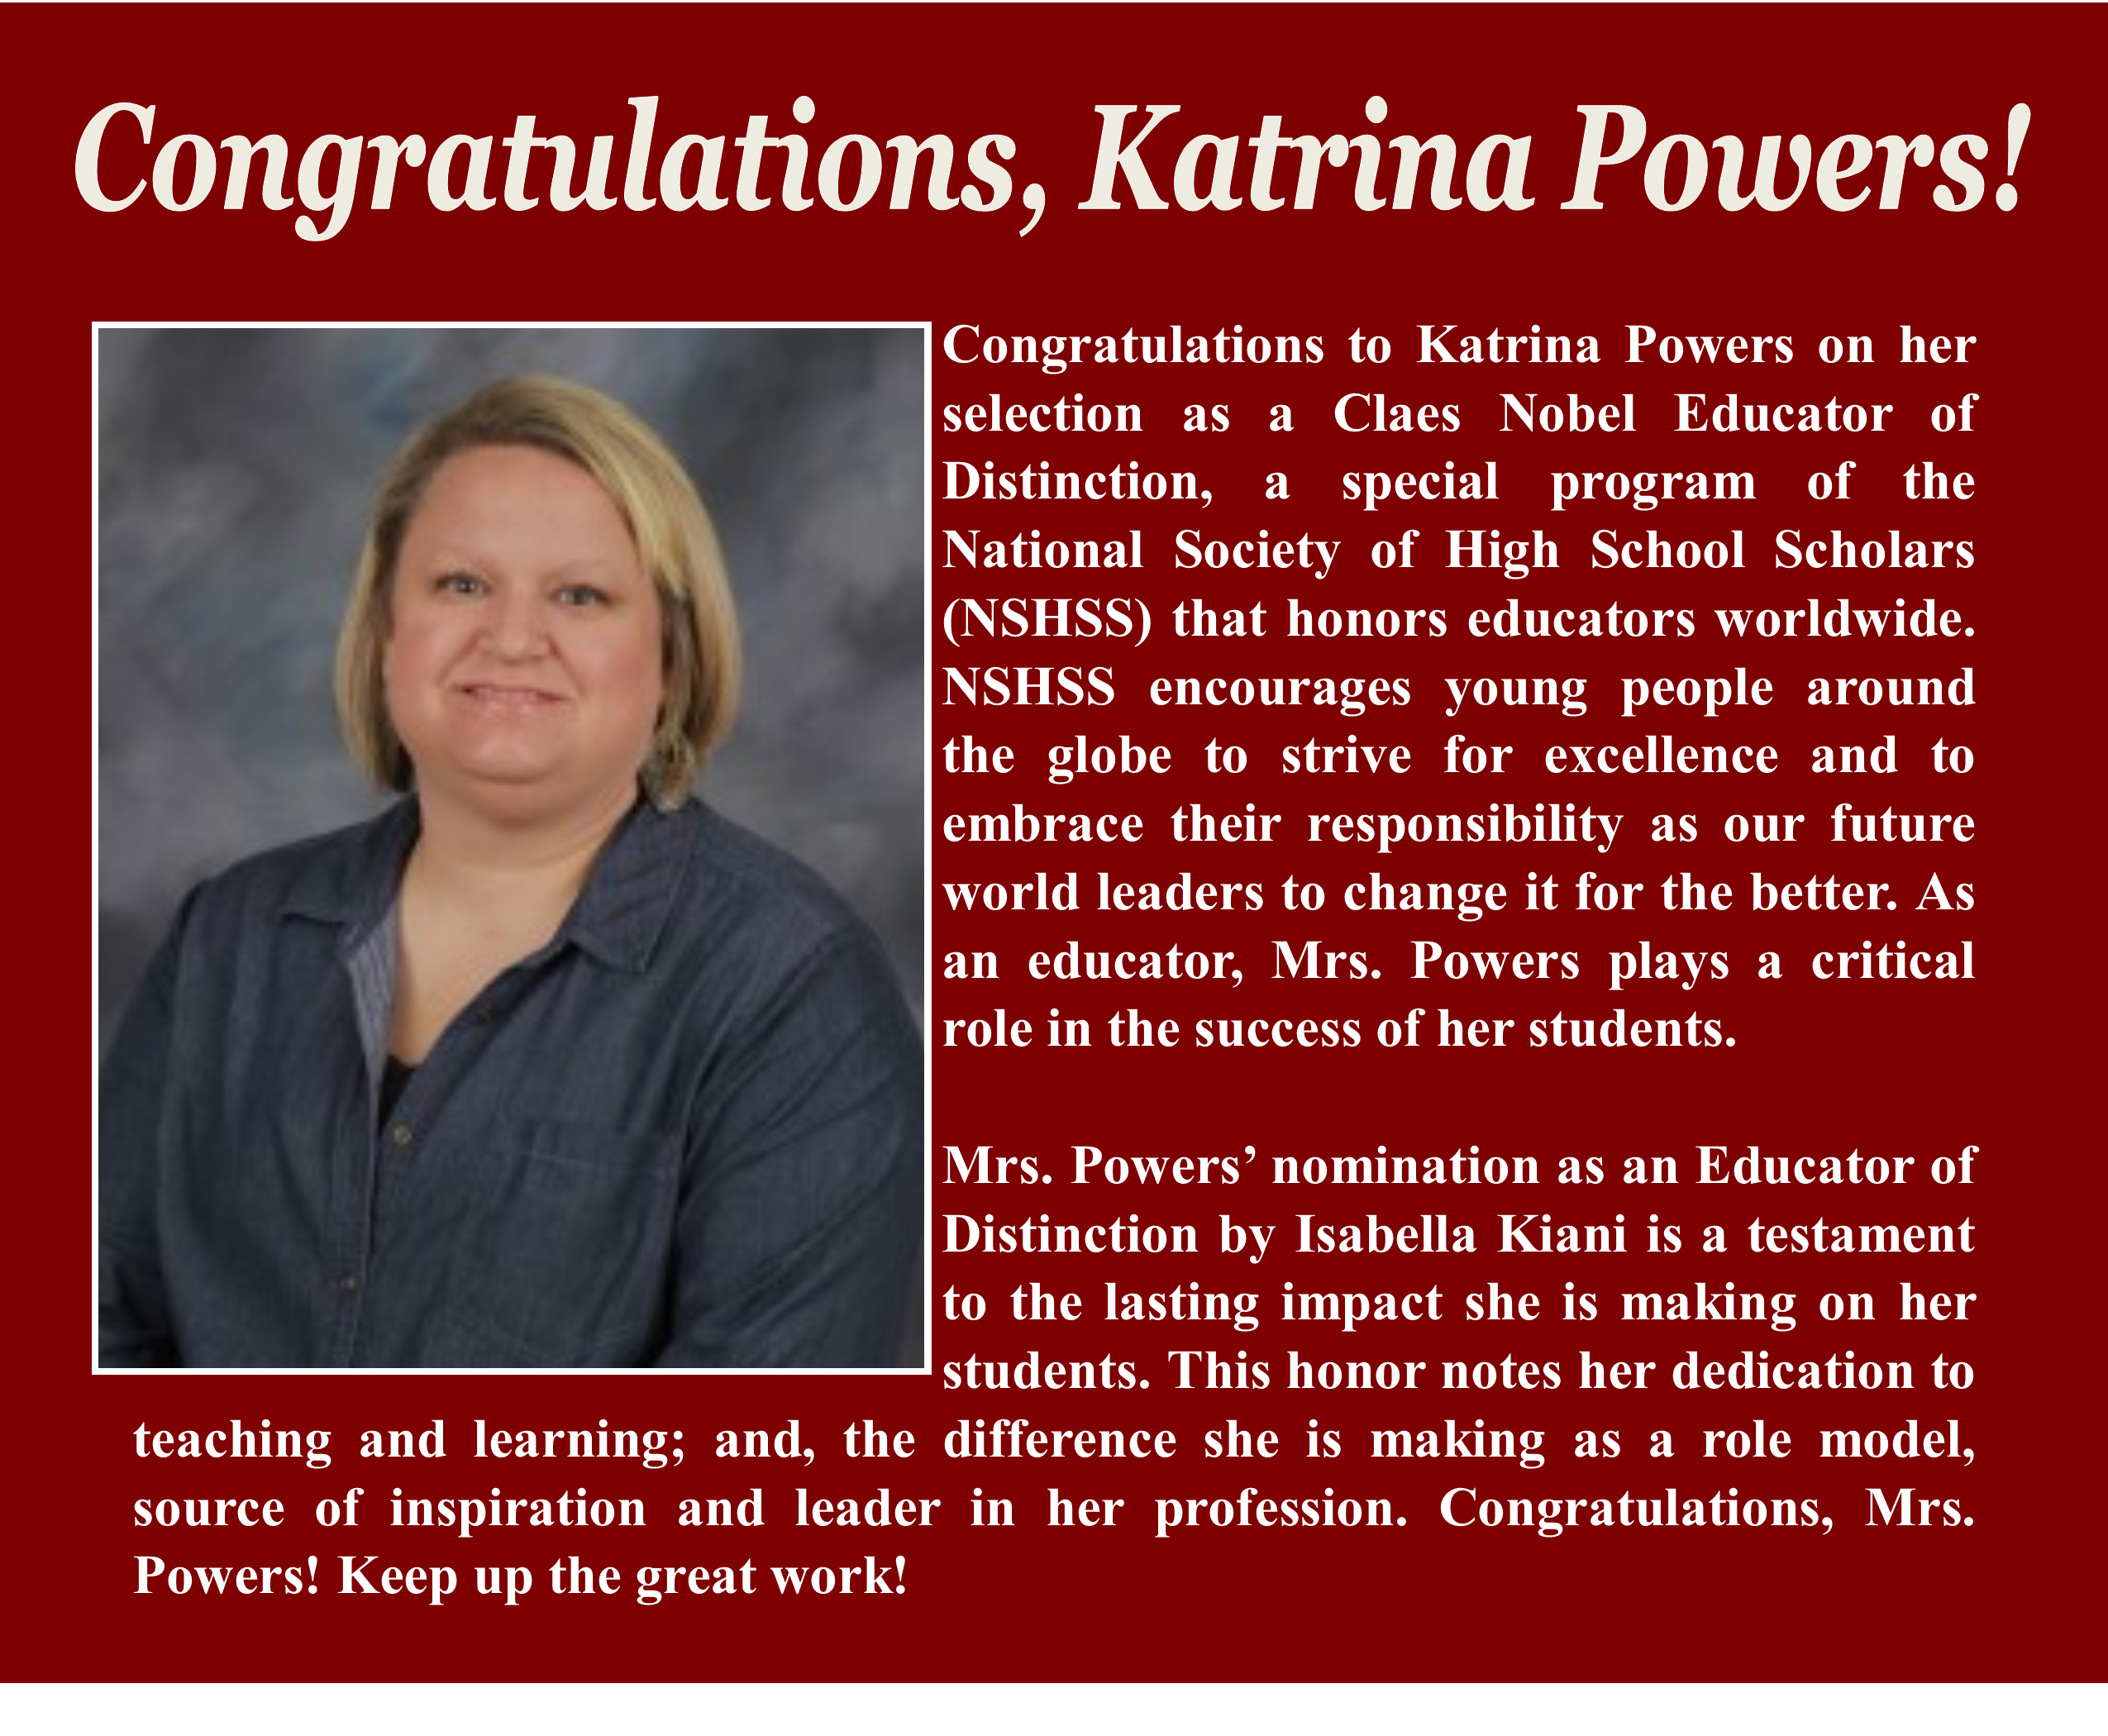 Congratulations to Katrina Powers for Claes Nobel Educator of Distinction